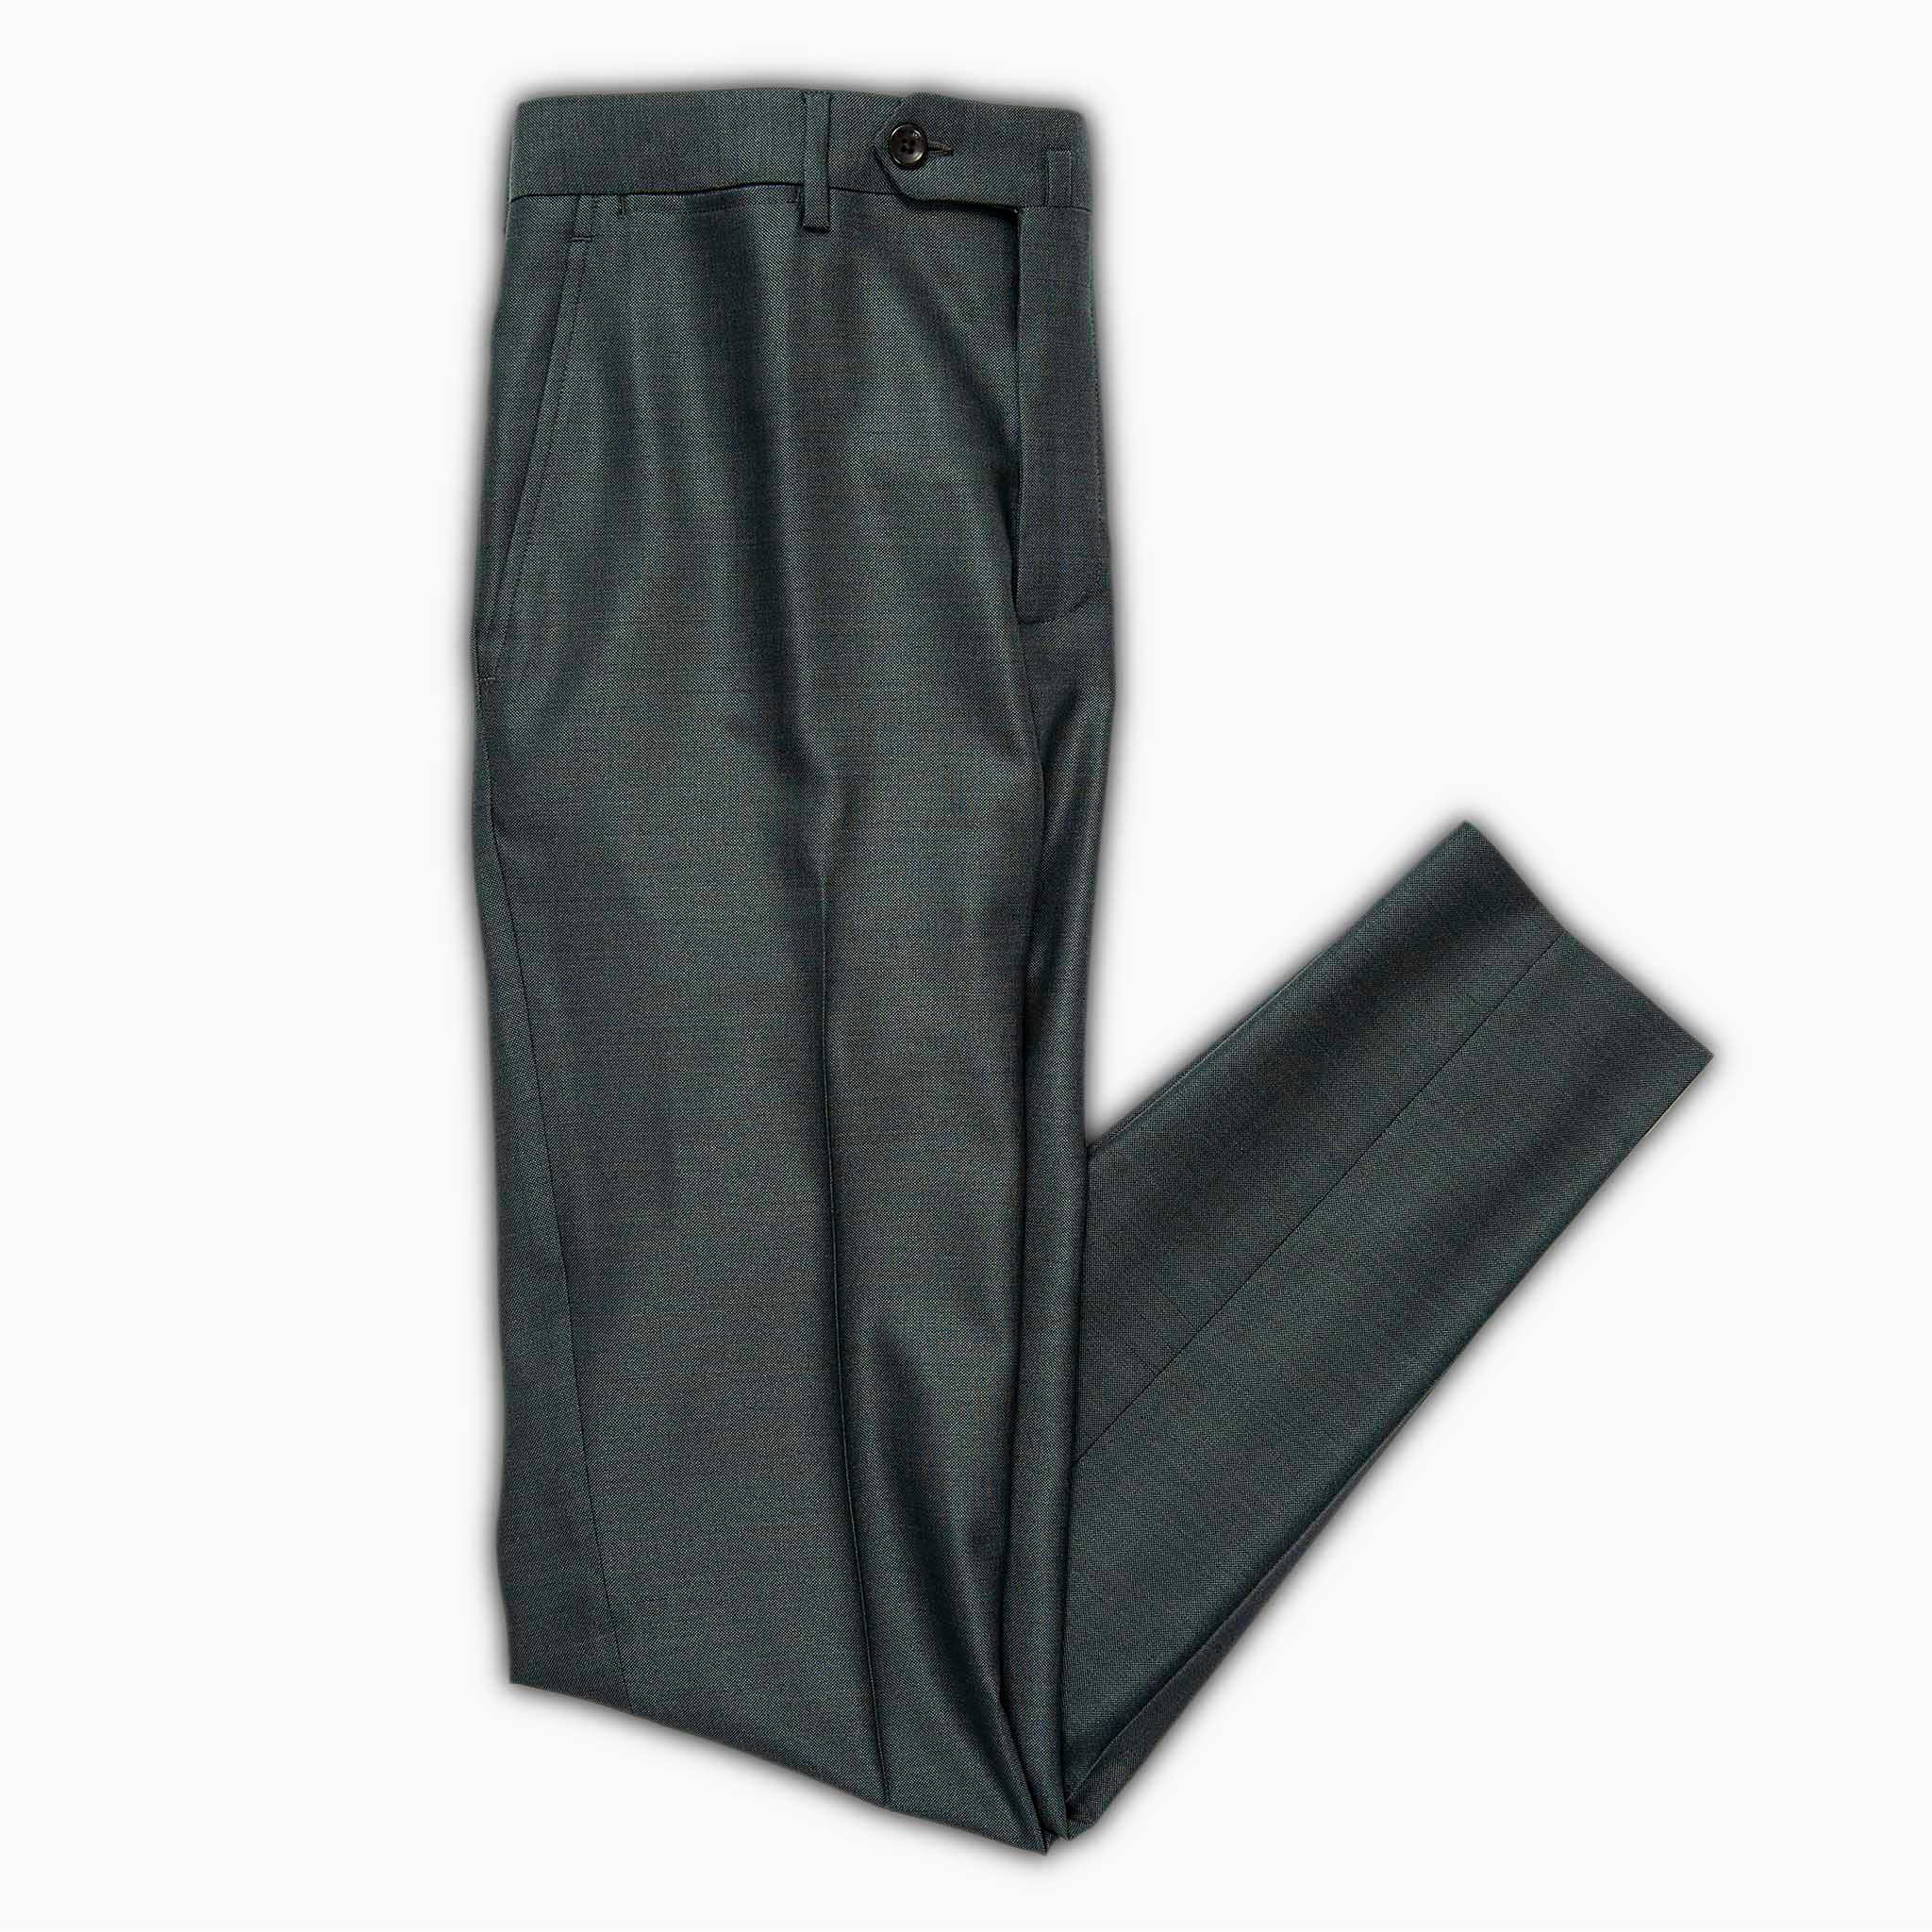 Flavien active chino pants in wool and silk (valley green)